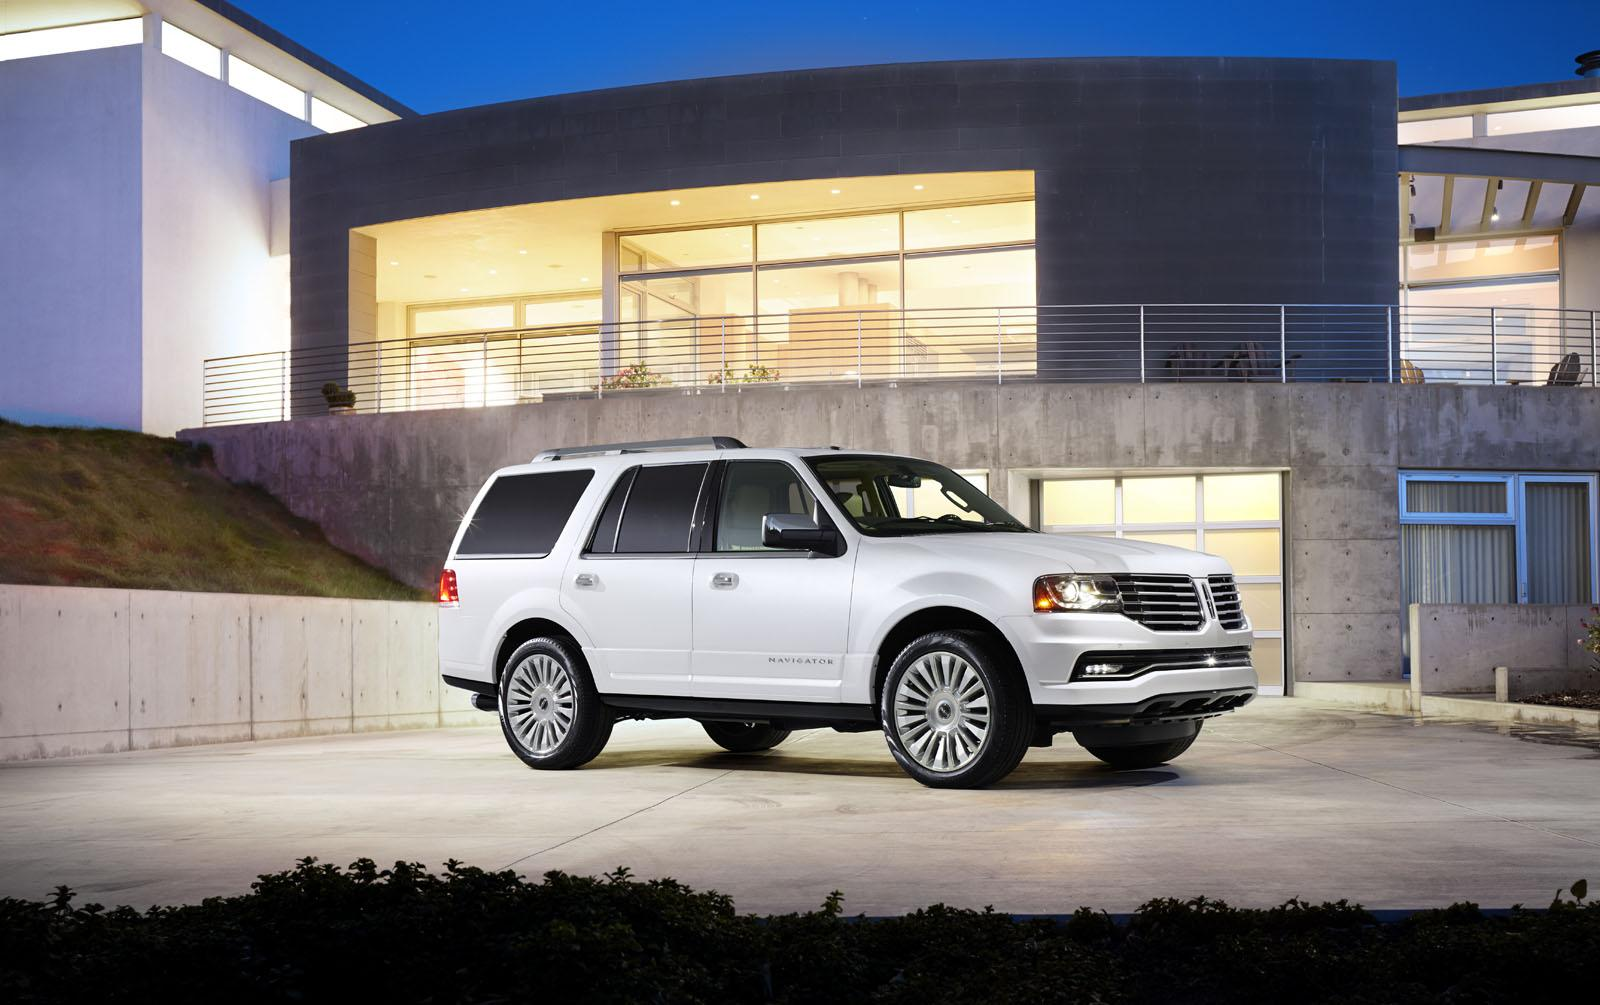 Bmw Of Fresno >> 2015 Lincoln Navigator Review, Ratings, Specs, Prices, and Photos - The Car Connection